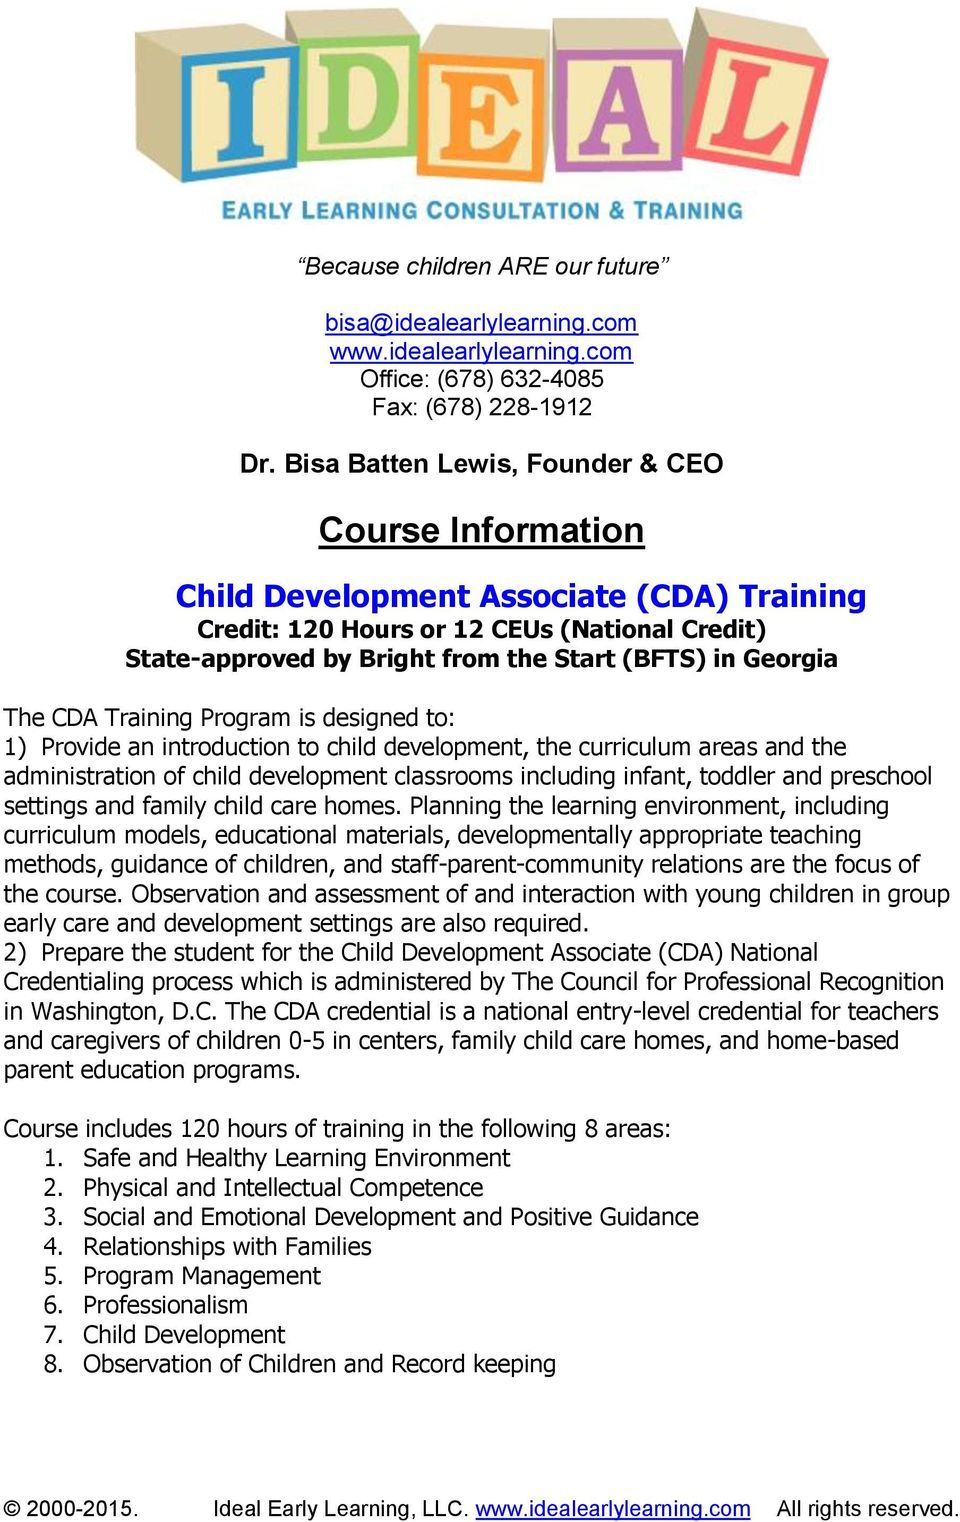 The CDA Training Program is designed to: 1) Provide an introduction to child development, the curriculum areas and the administration of child development classrooms including infant, toddler and